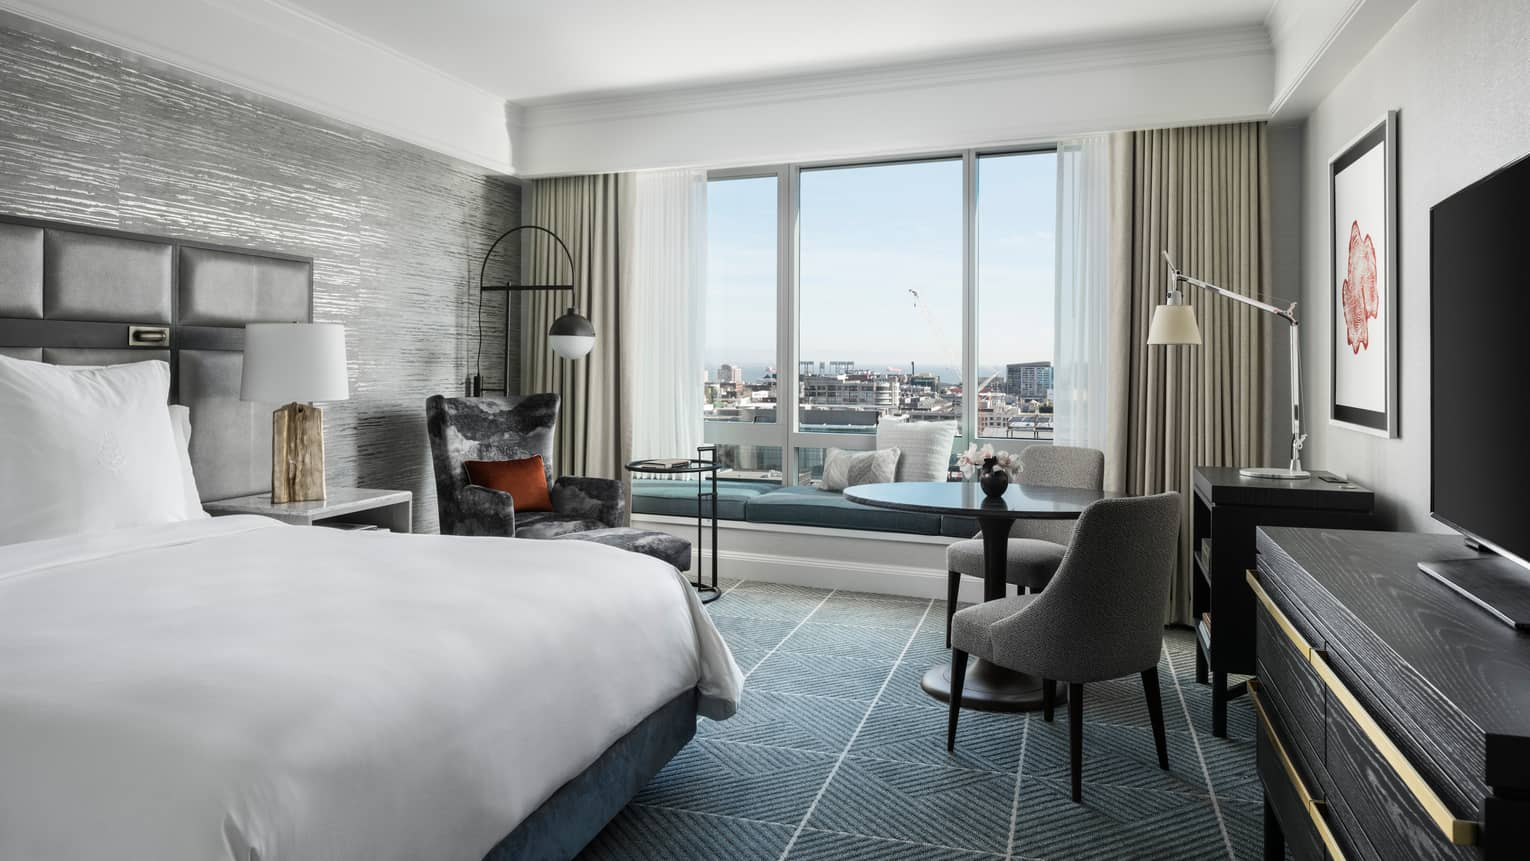 Modern hotel room with king bed, table and two upholstered grey chairs, windows overlooking San Francisco